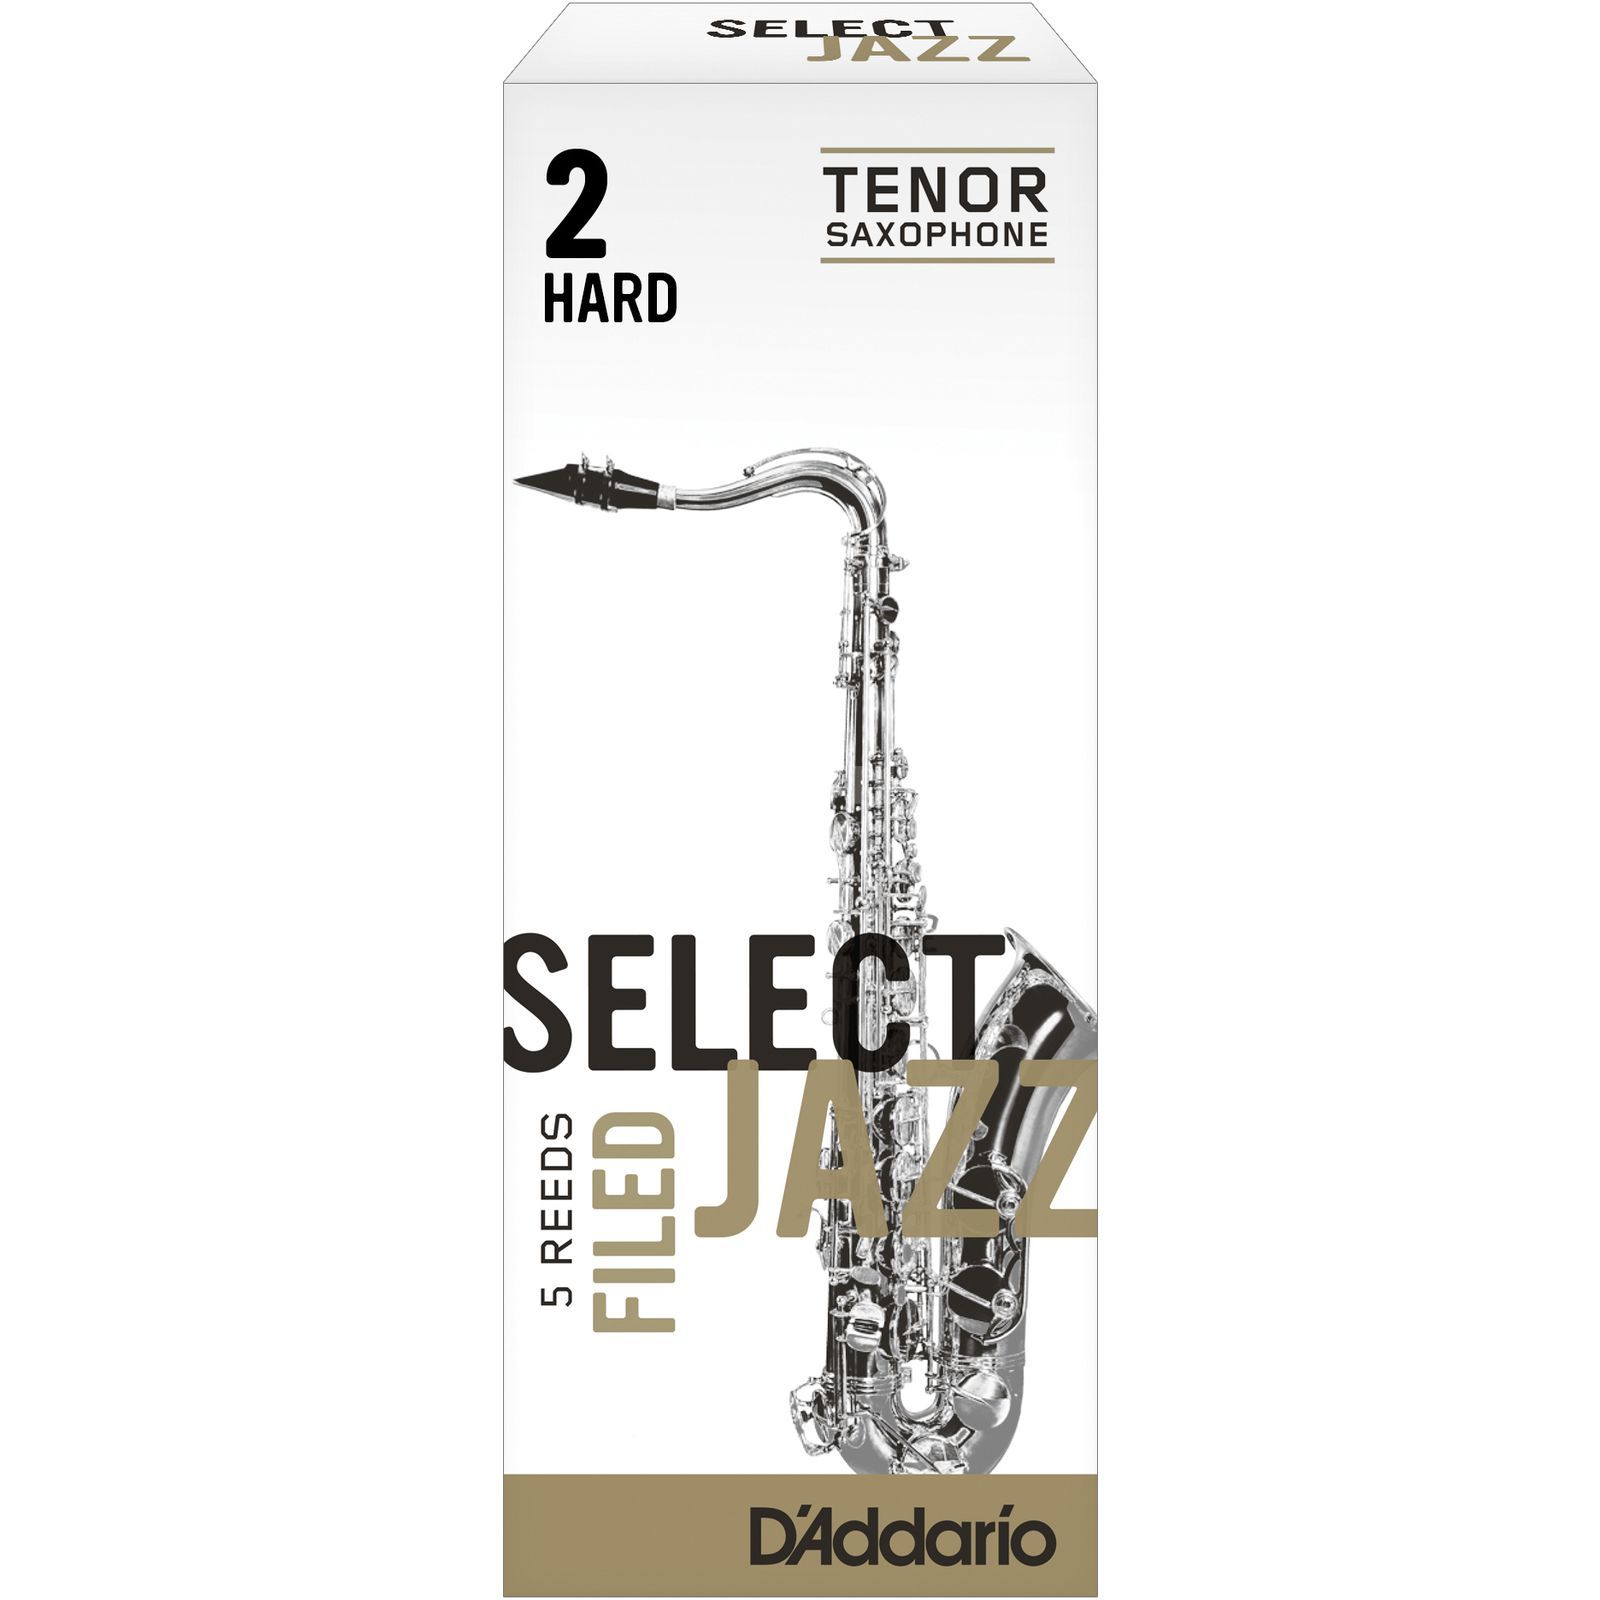 D'Addario Woodwinds Tenor Sax Reeds 2H Box of 5 Product Image